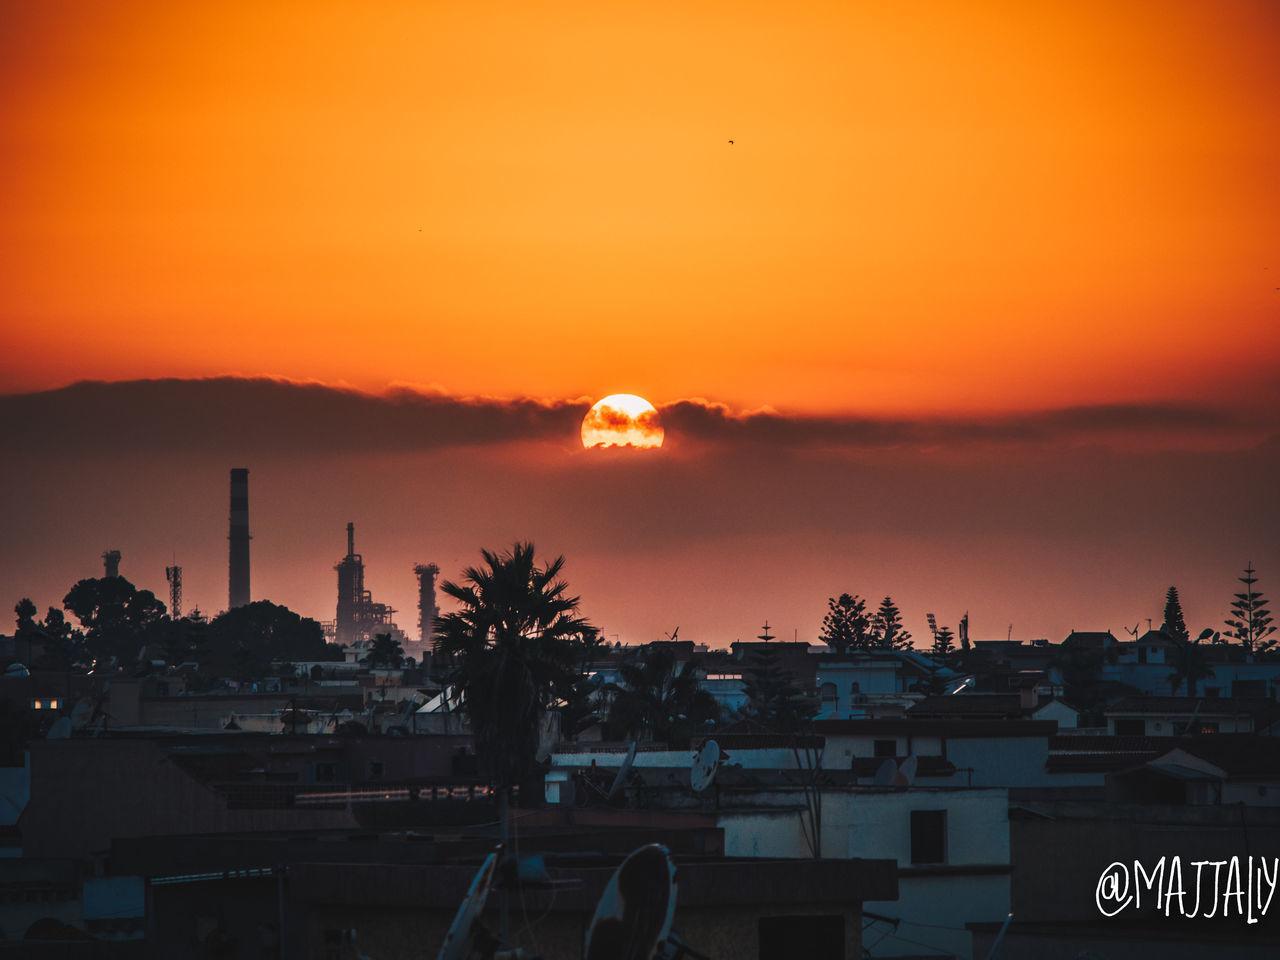 sunset, sky, orange color, architecture, building exterior, built structure, silhouette, nature, water, beauty in nature, no people, cloud - sky, city, scenics - nature, building, religion, belief, outdoors, place of worship, romantic sky